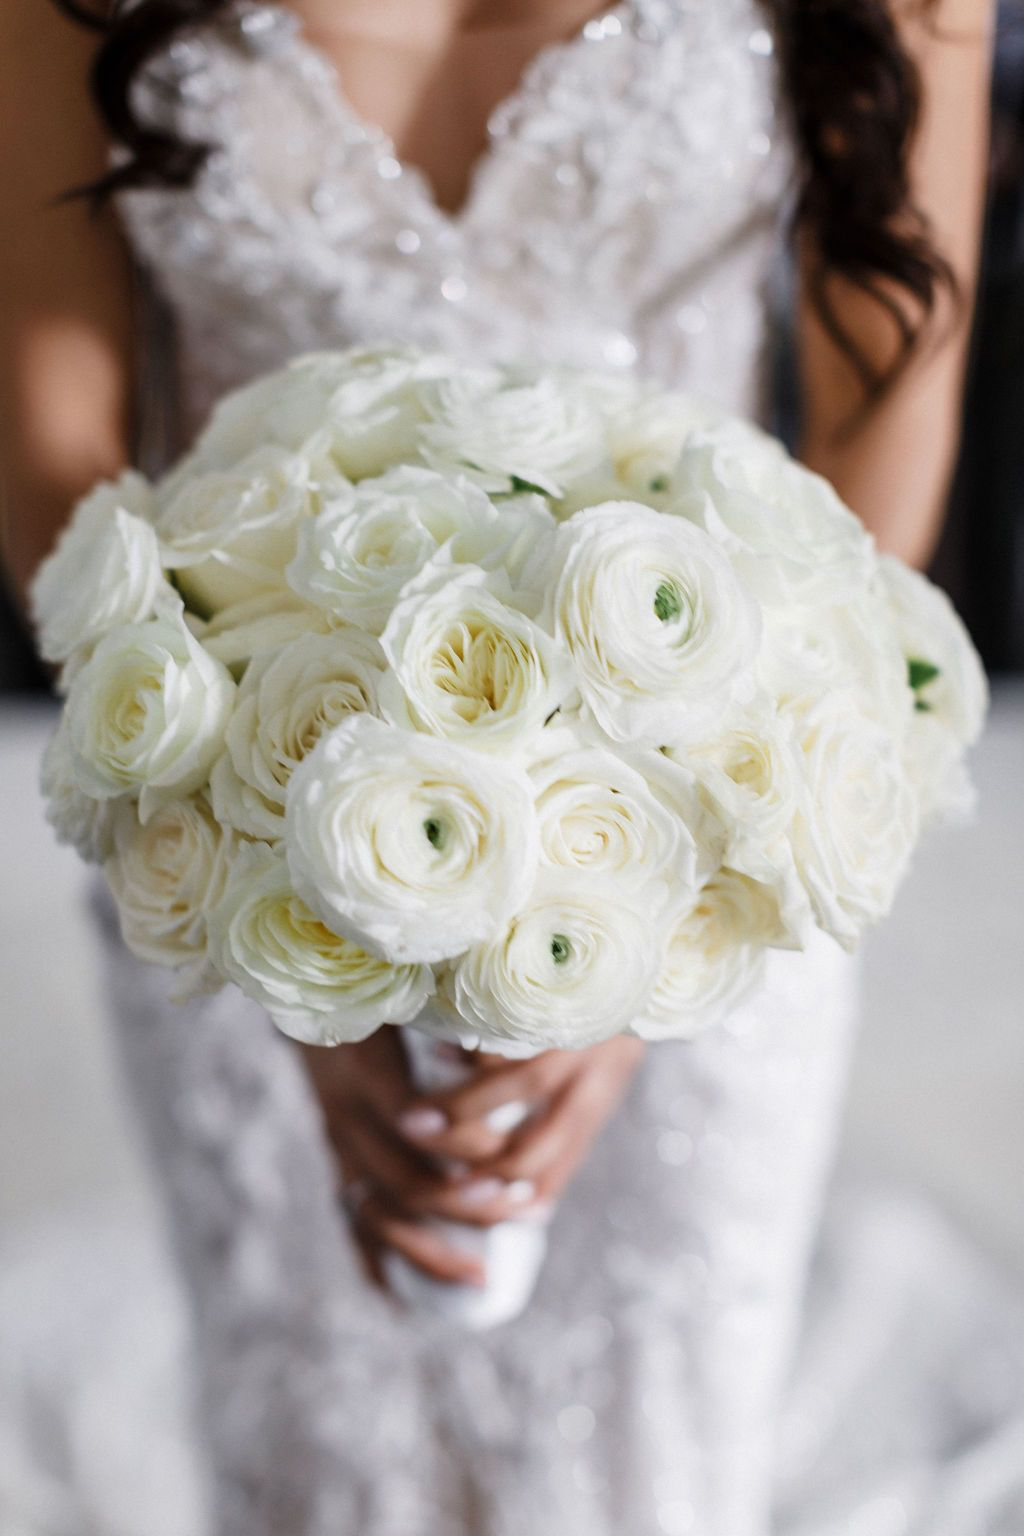 Do you want to see more weddings? Check out my blog for